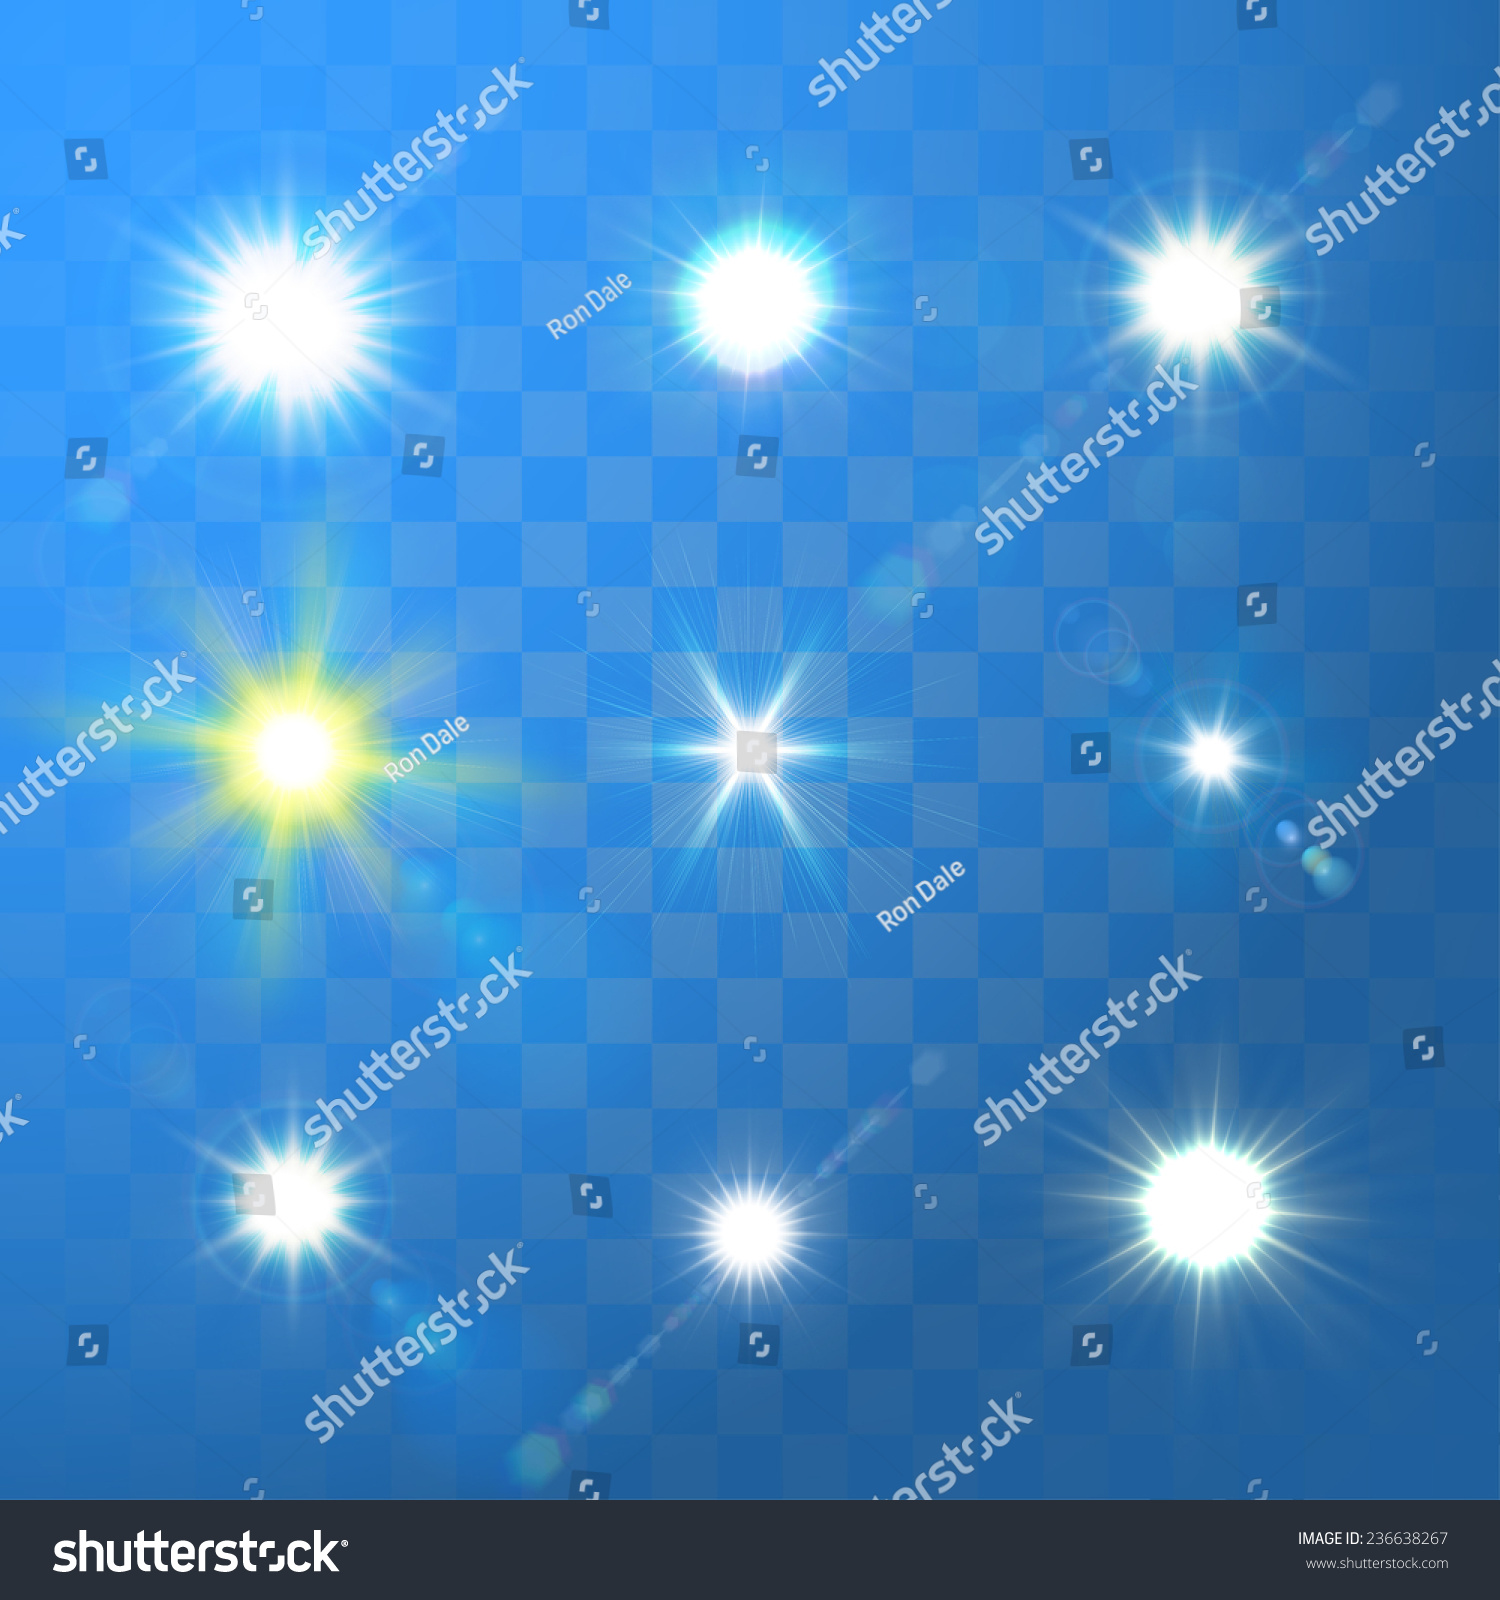 Set Vector Glowing Sun Light Effect Stock Vector 236638267 ... for Sun Light Effect Background  45hul